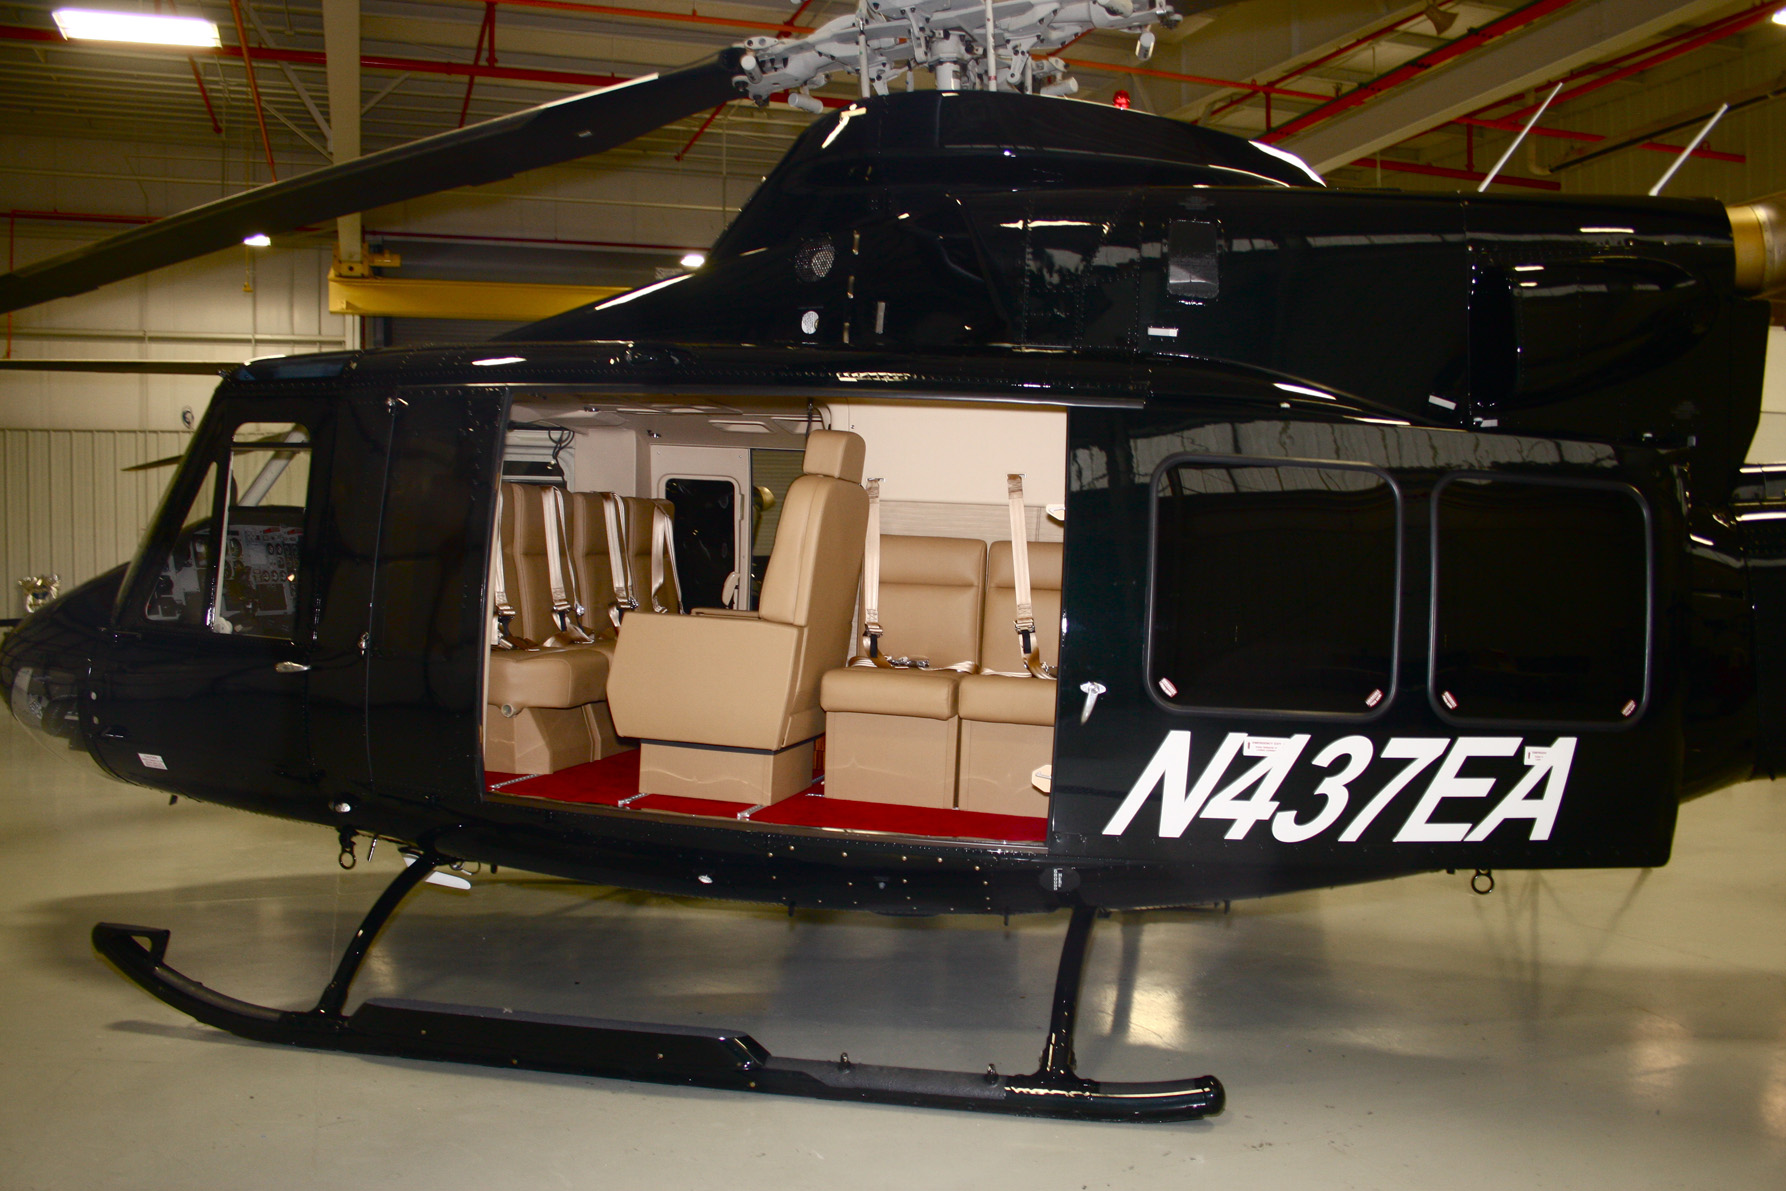 Bell Helicopter delivers 412s to Sri Lanka